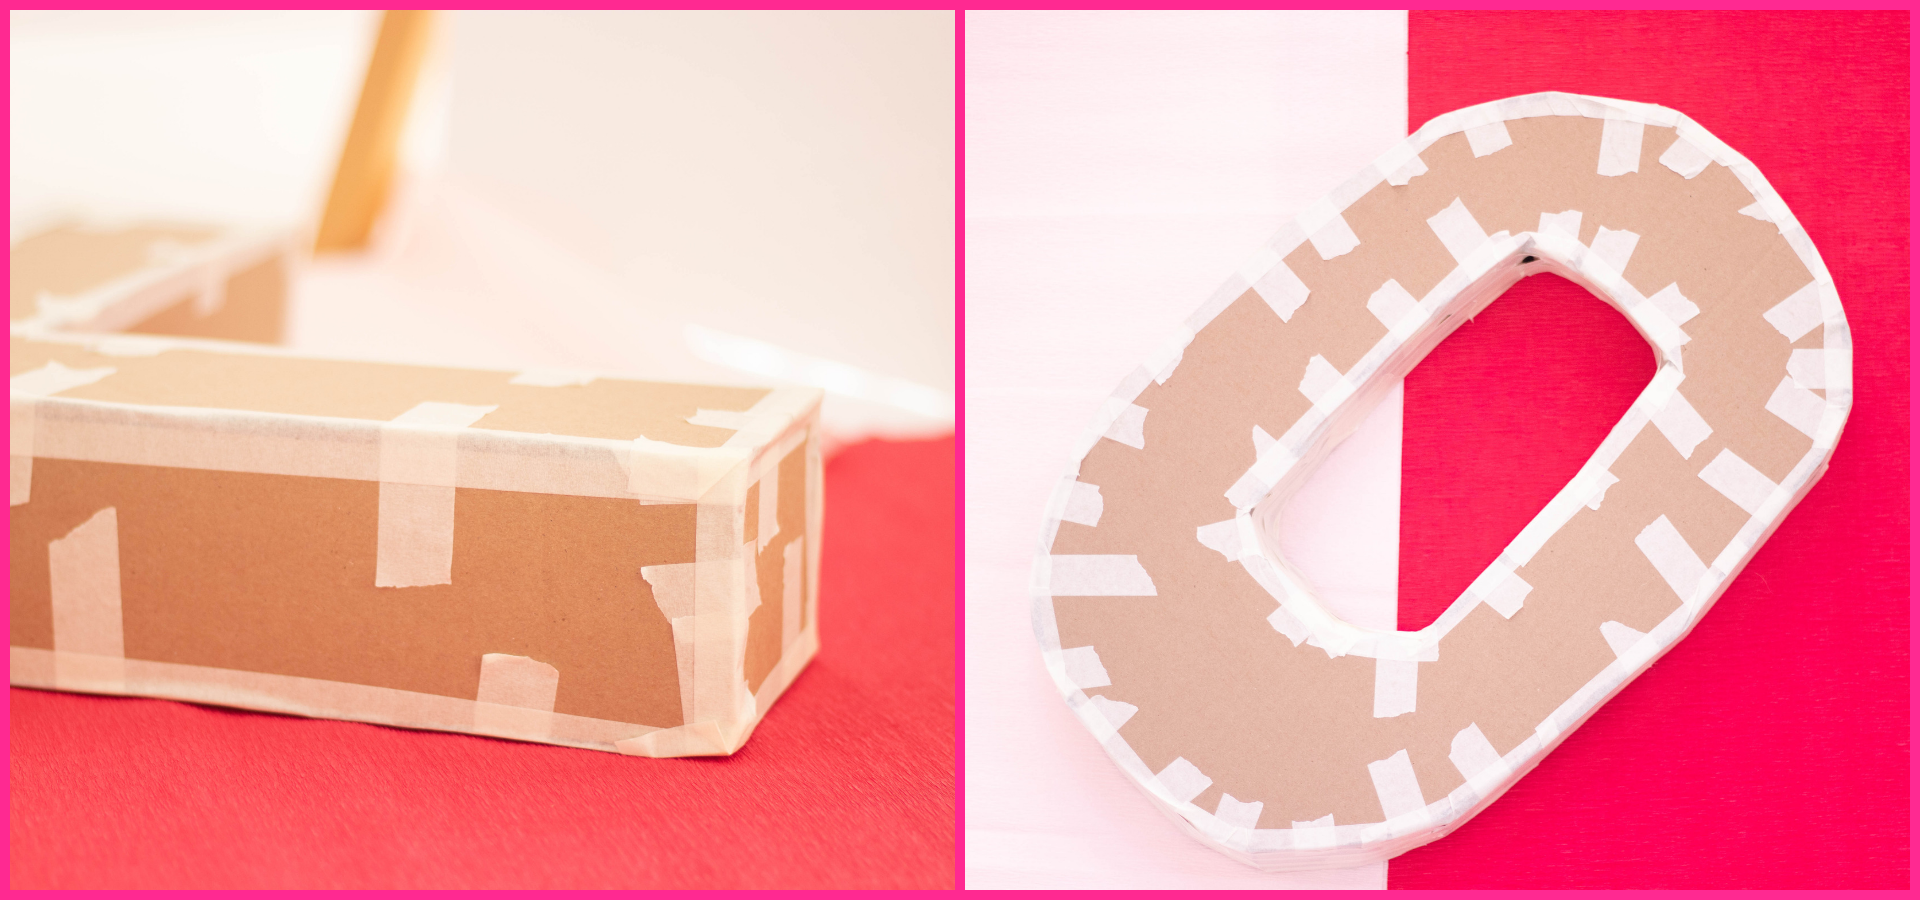 build out your 3d letters with scotch tape.